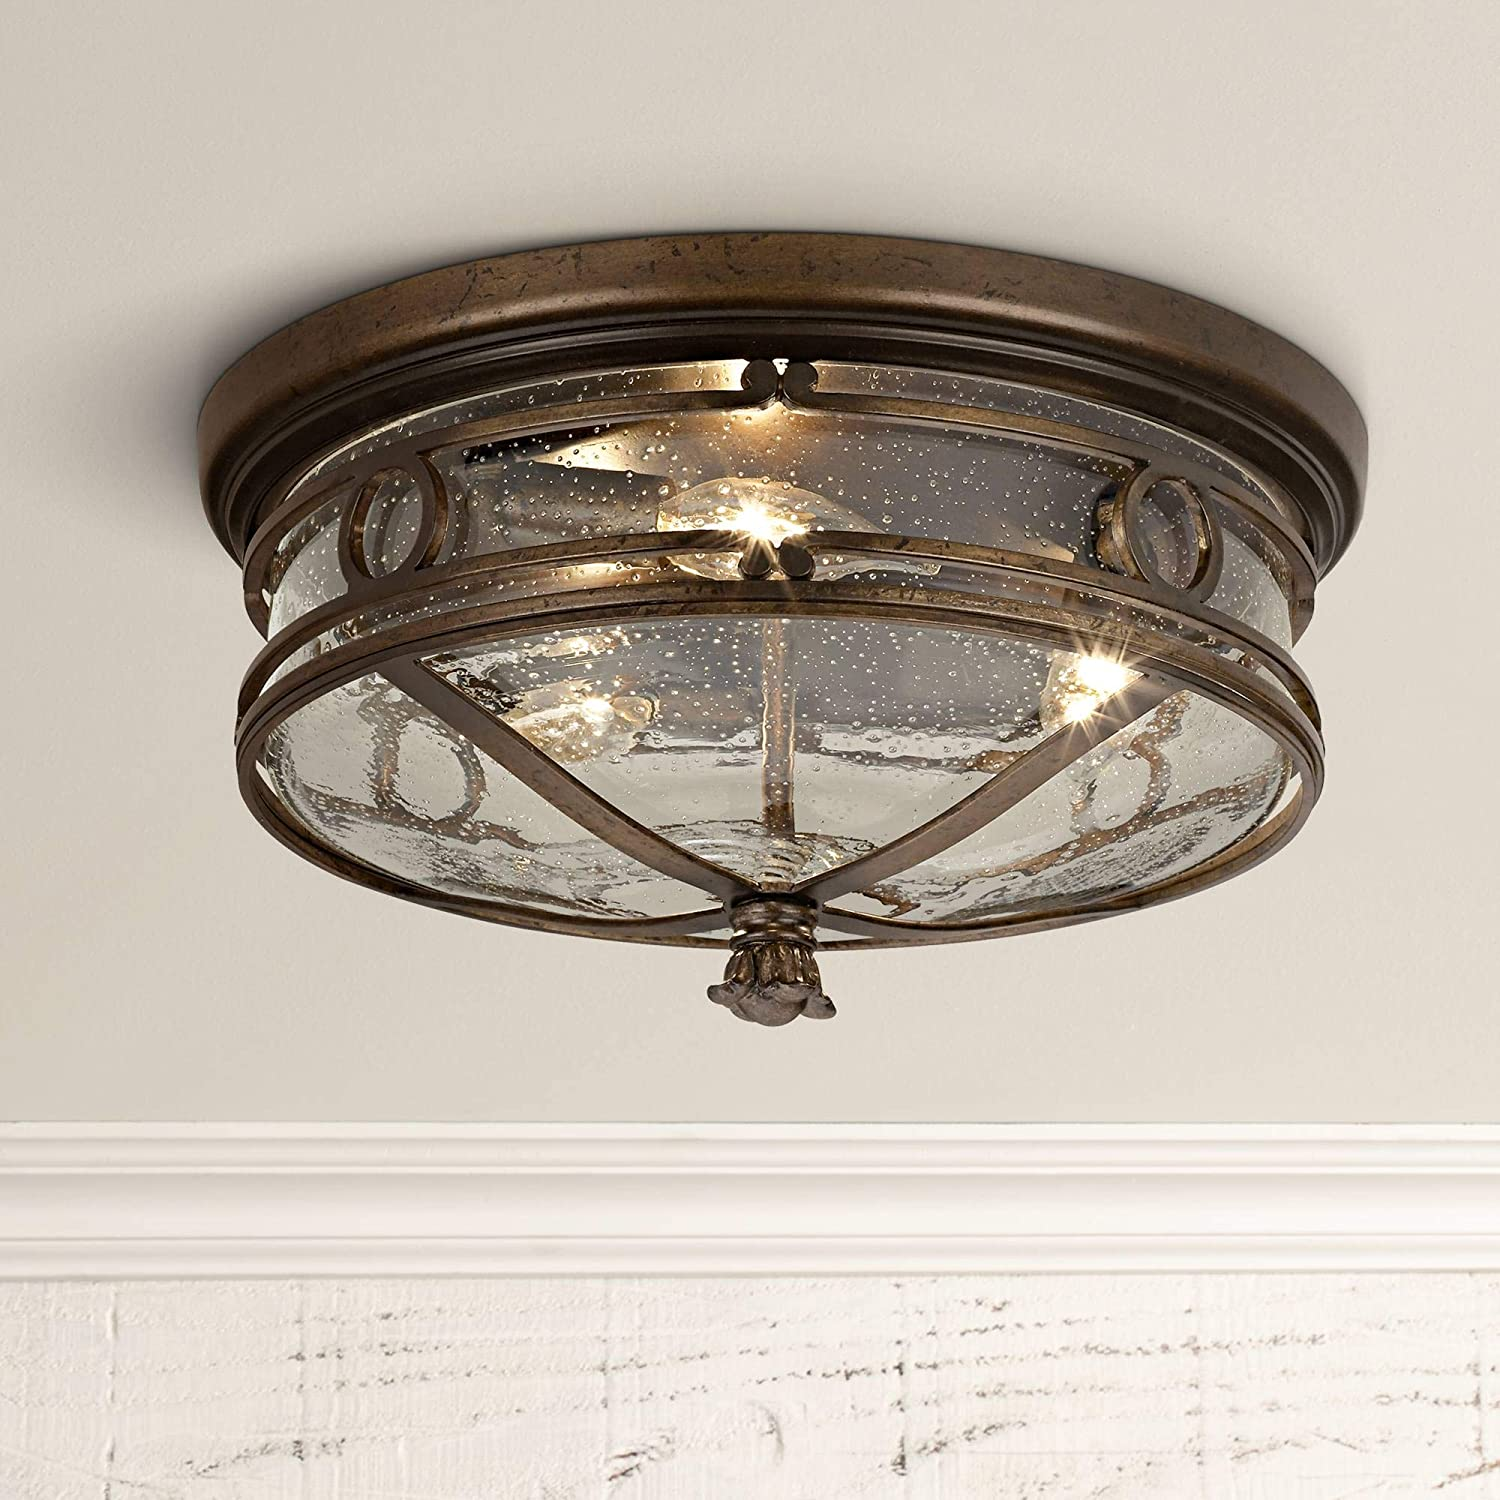 Beverly drive 14 wide indoor outdoor ceiling light close to ceiling light fixtures amazon com